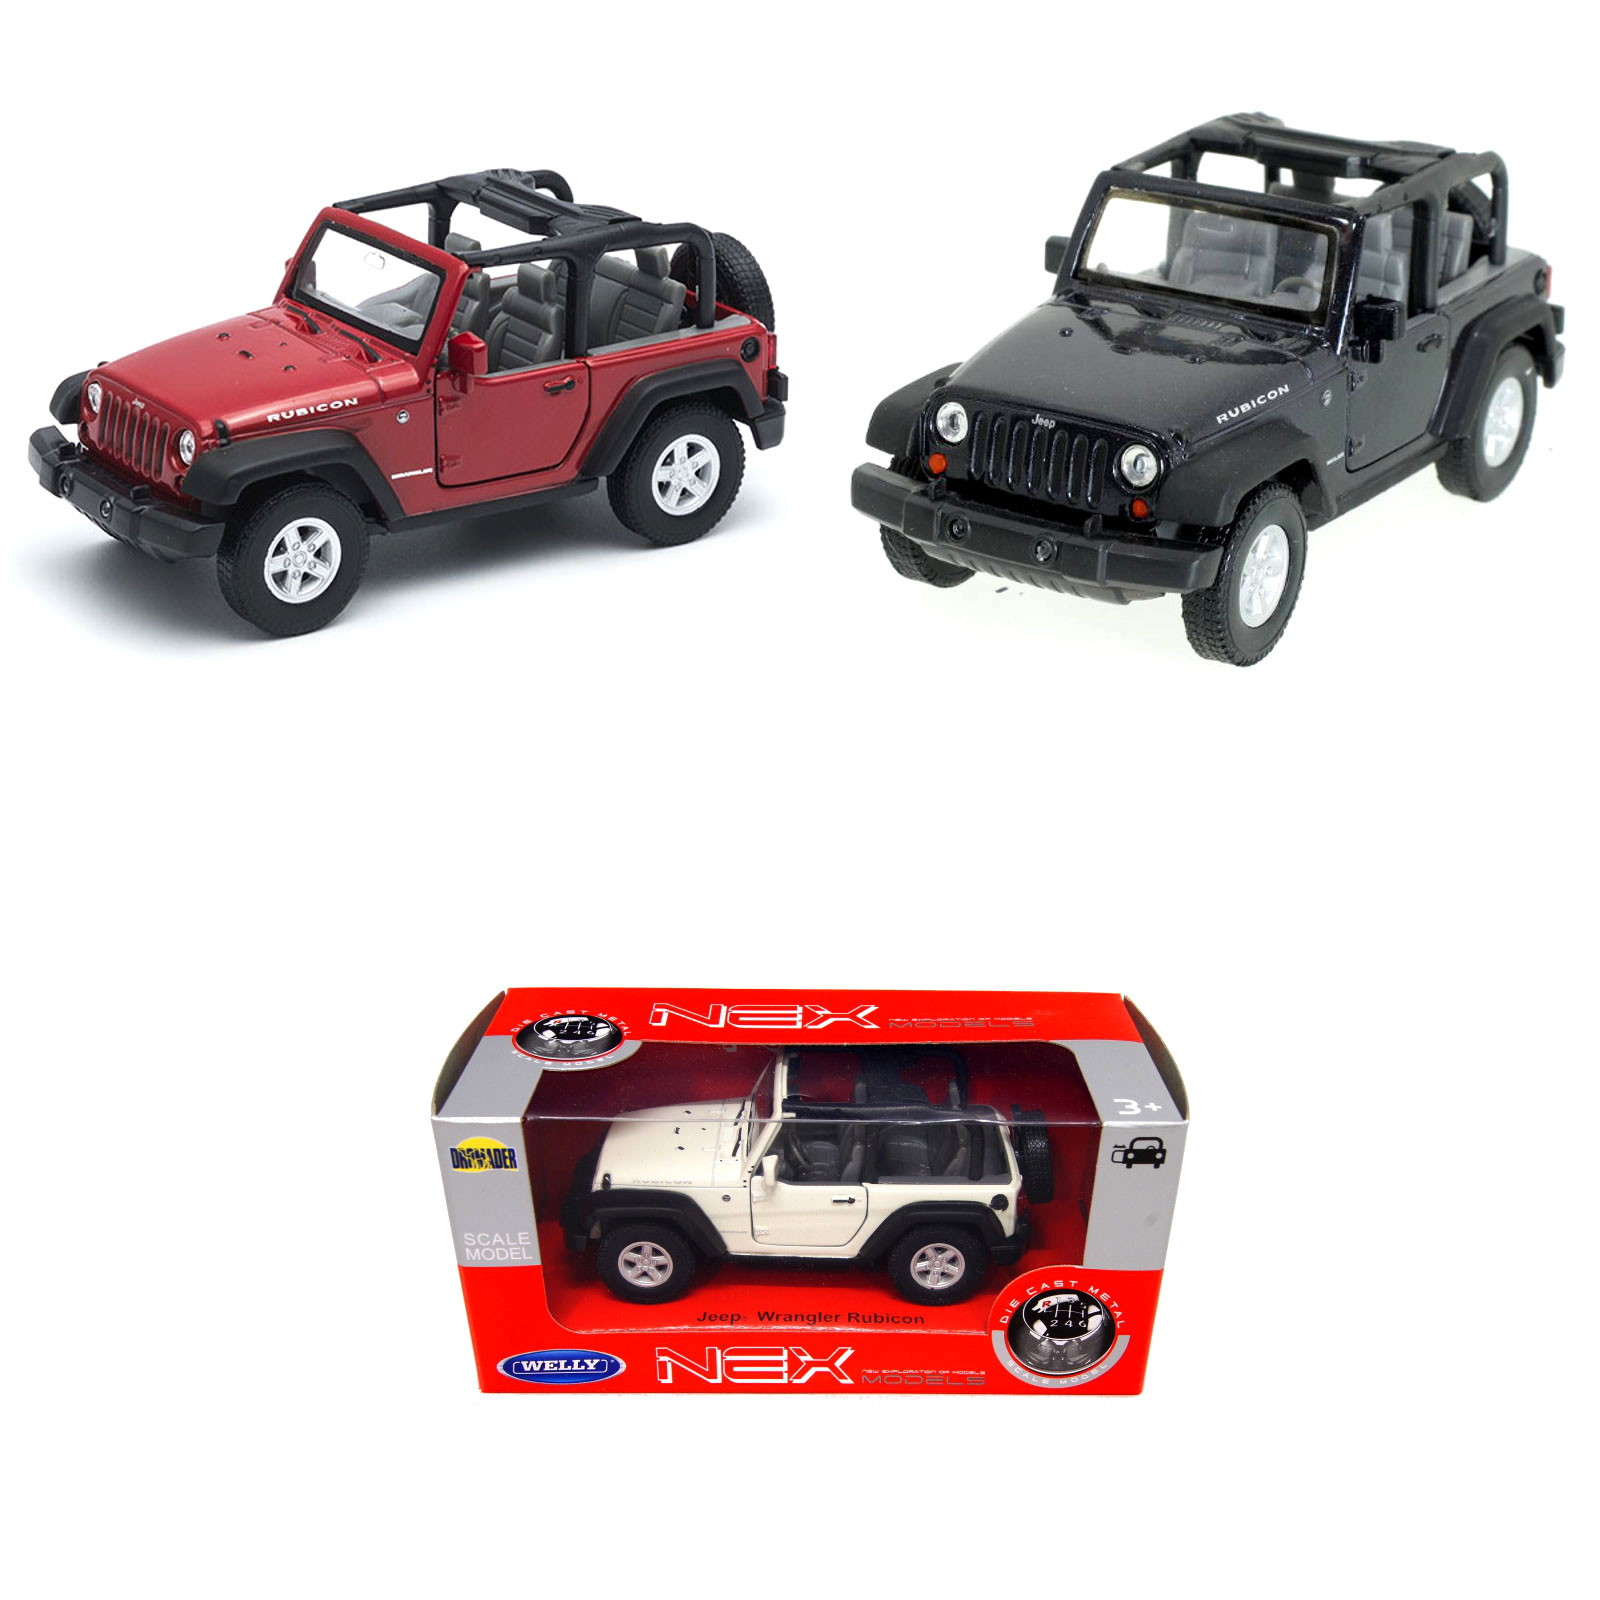 Модель машины Jeep Wrangler Rubicon, 1:34-39 от Toyway